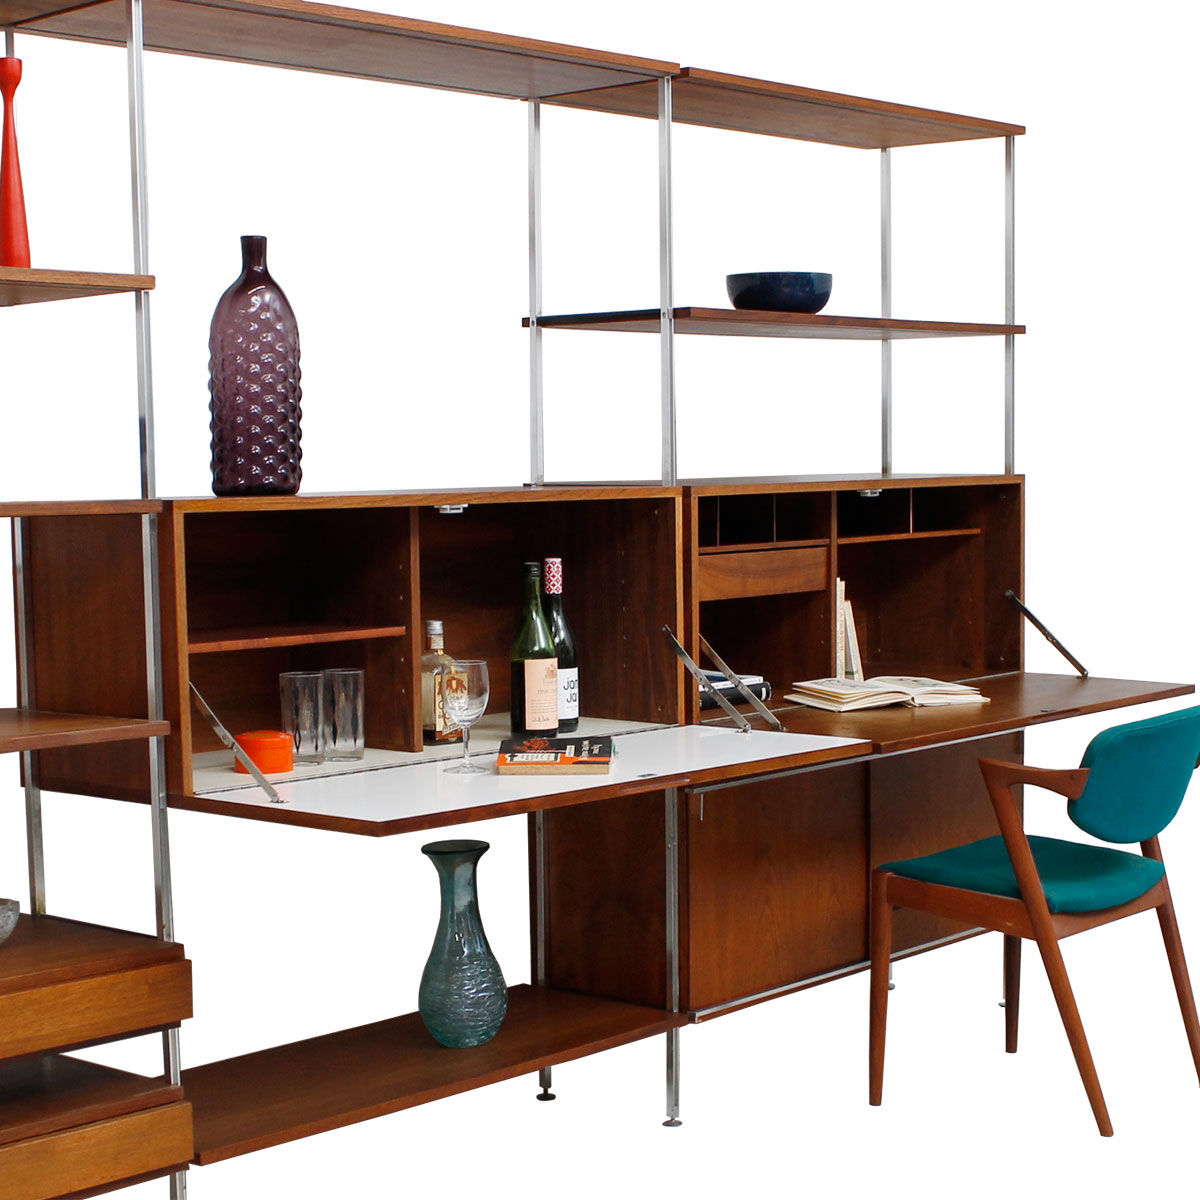 Rare Wall Unit Designed by Hugh Acton